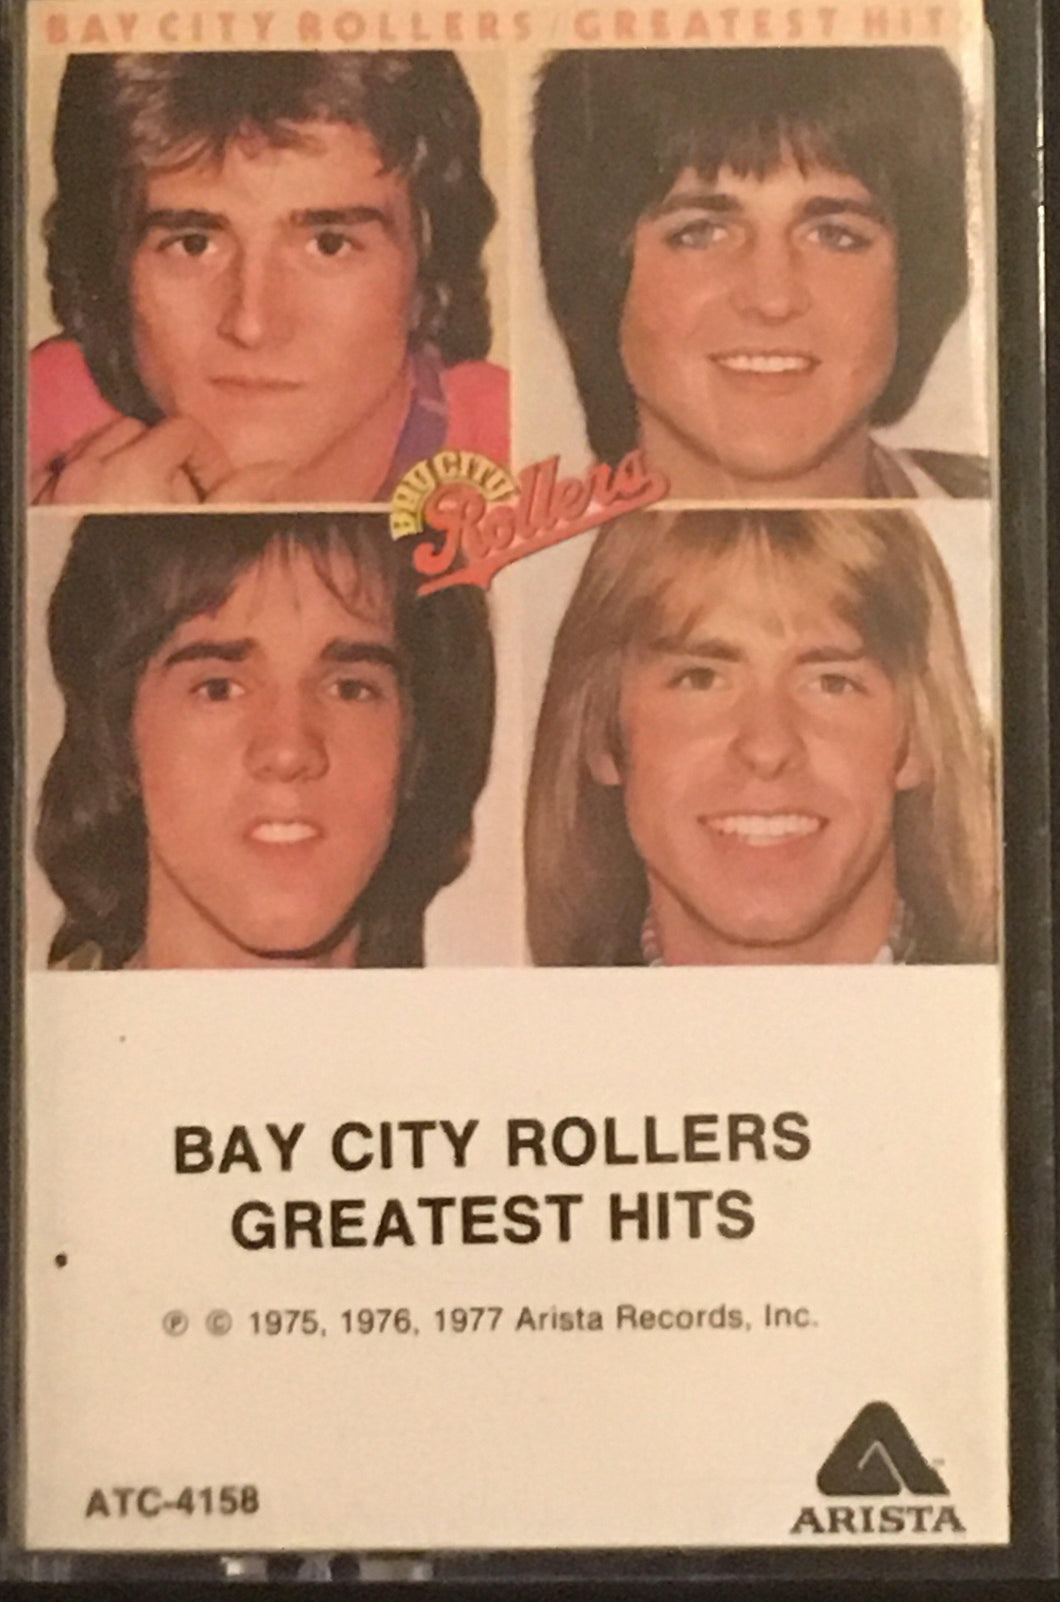 Bay City Rollers Greatest Hits Cassette VG - 3rdfloortapes.com